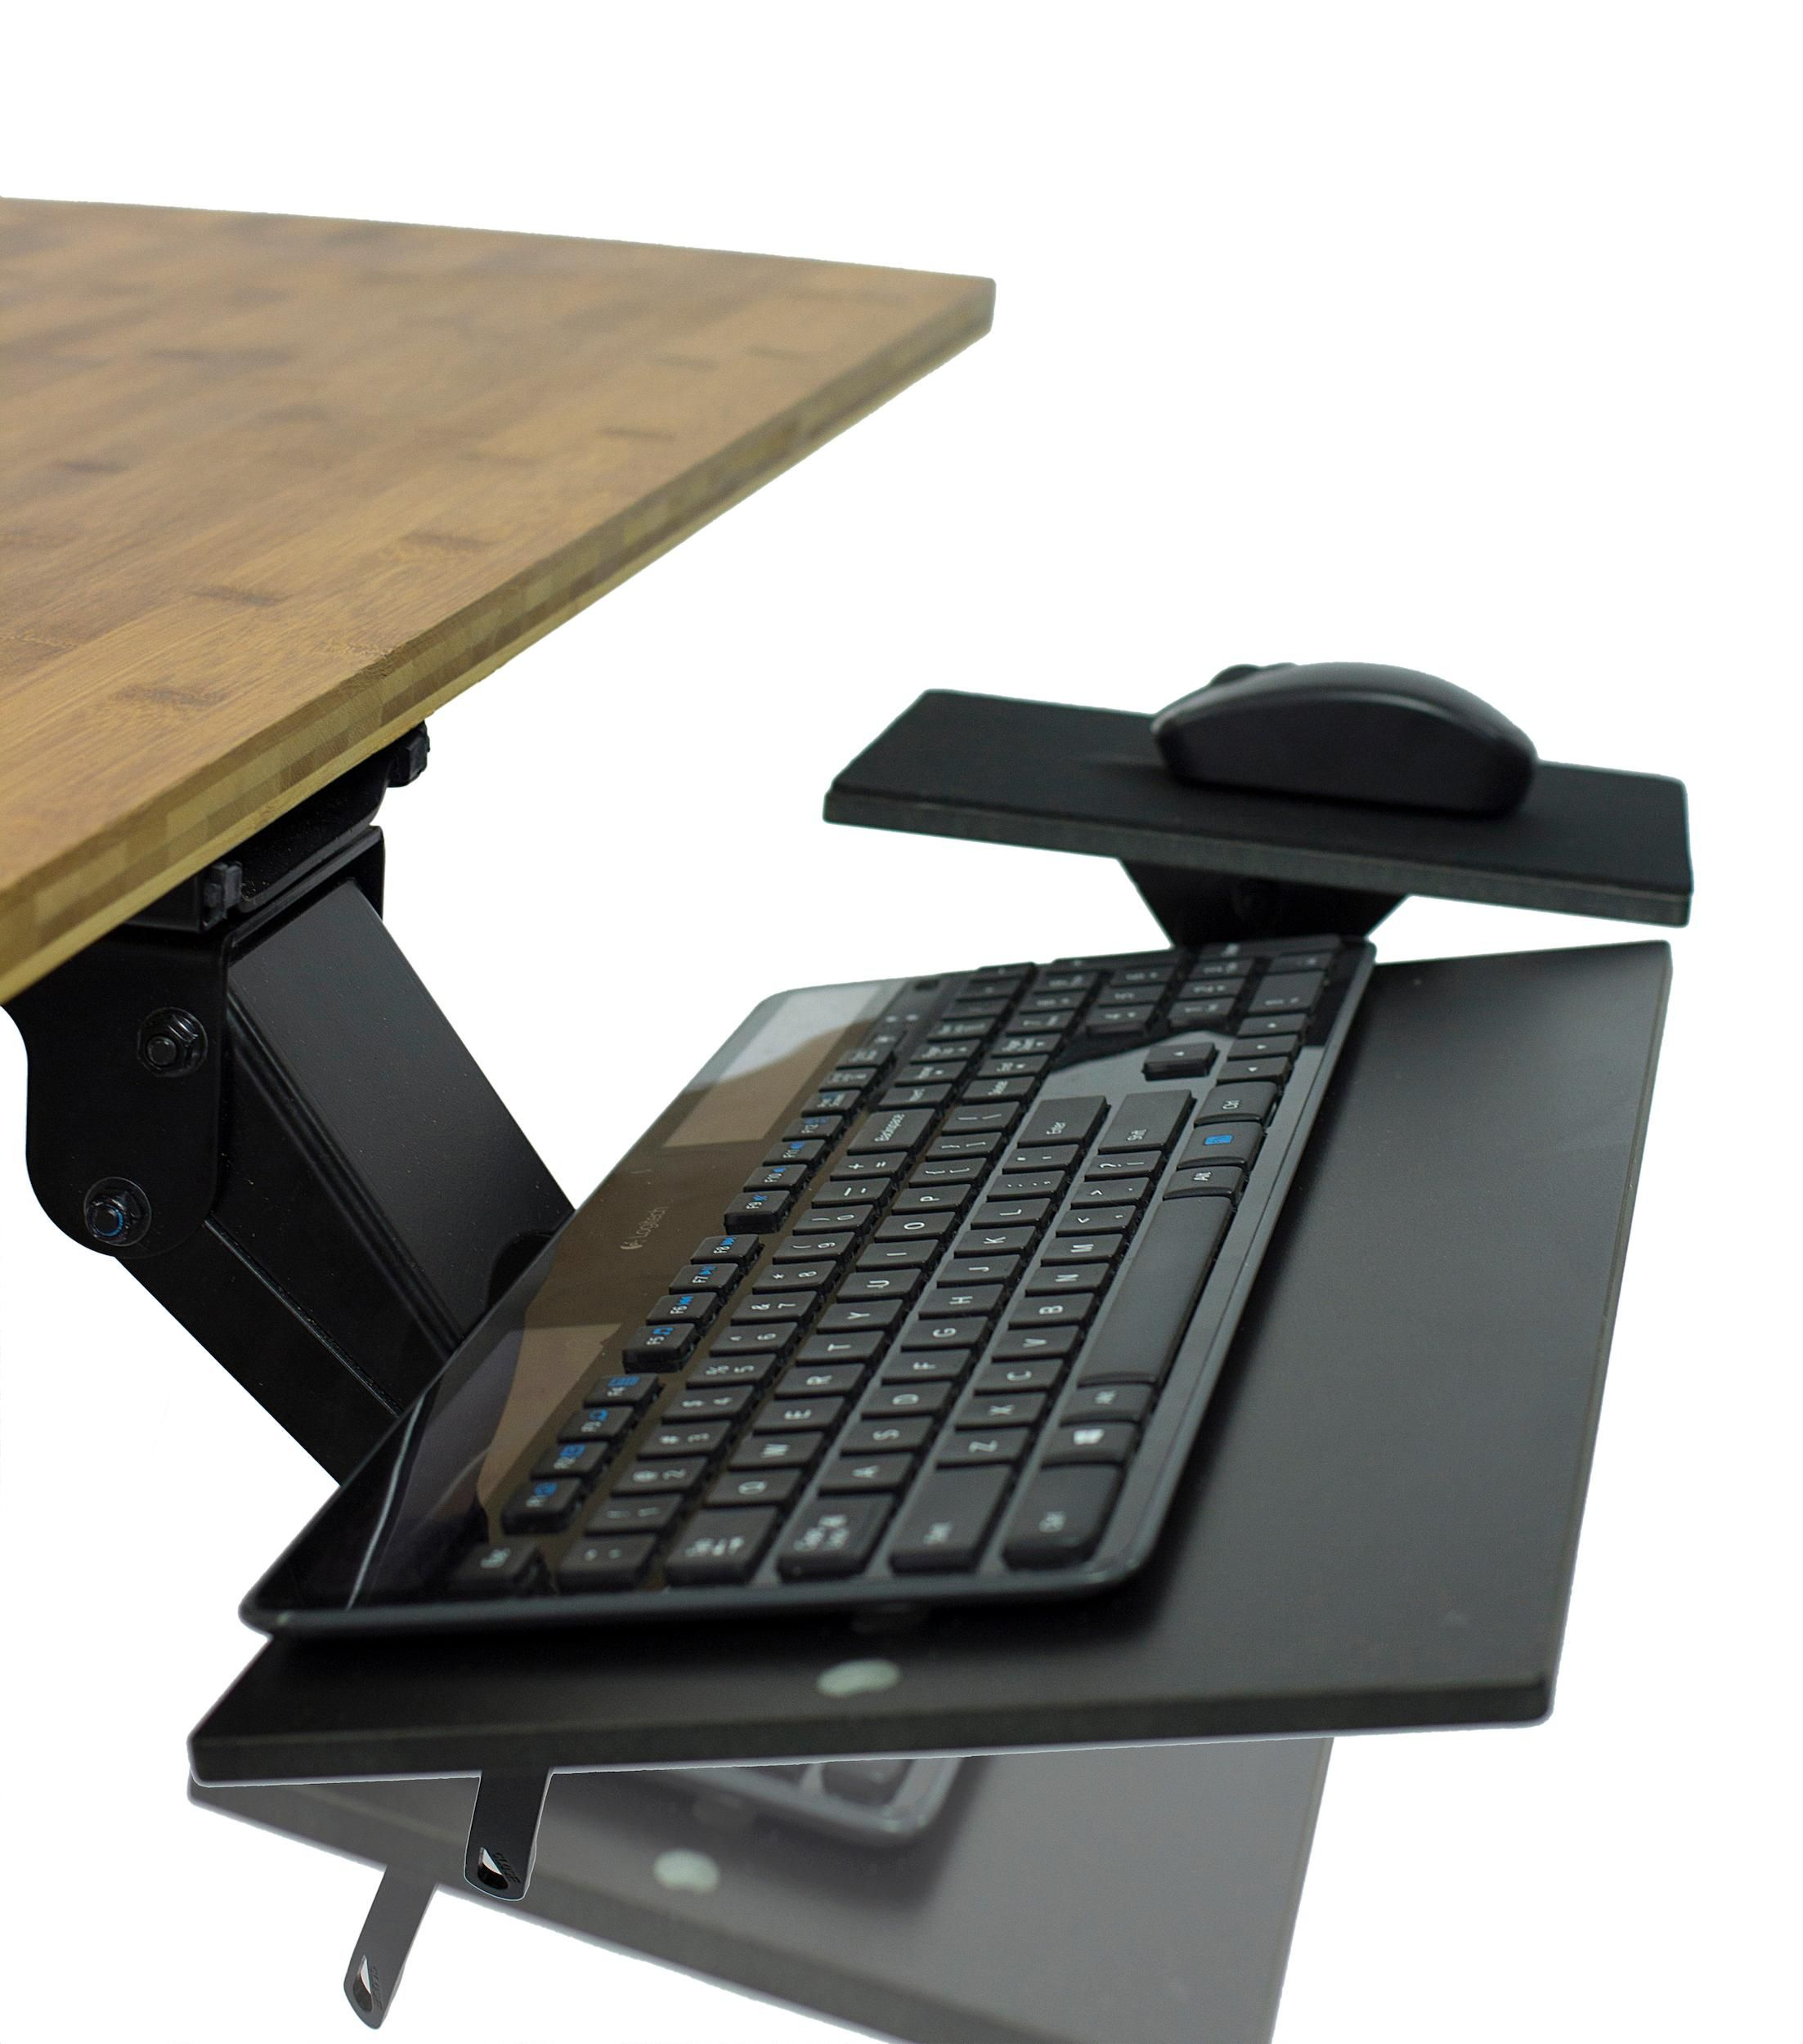 Ergonomic Adjustable Angle Keyboard Tray With Negative Tilt Standing Desk Keyboard Tray Adjustable Standing Desk Ergonomics